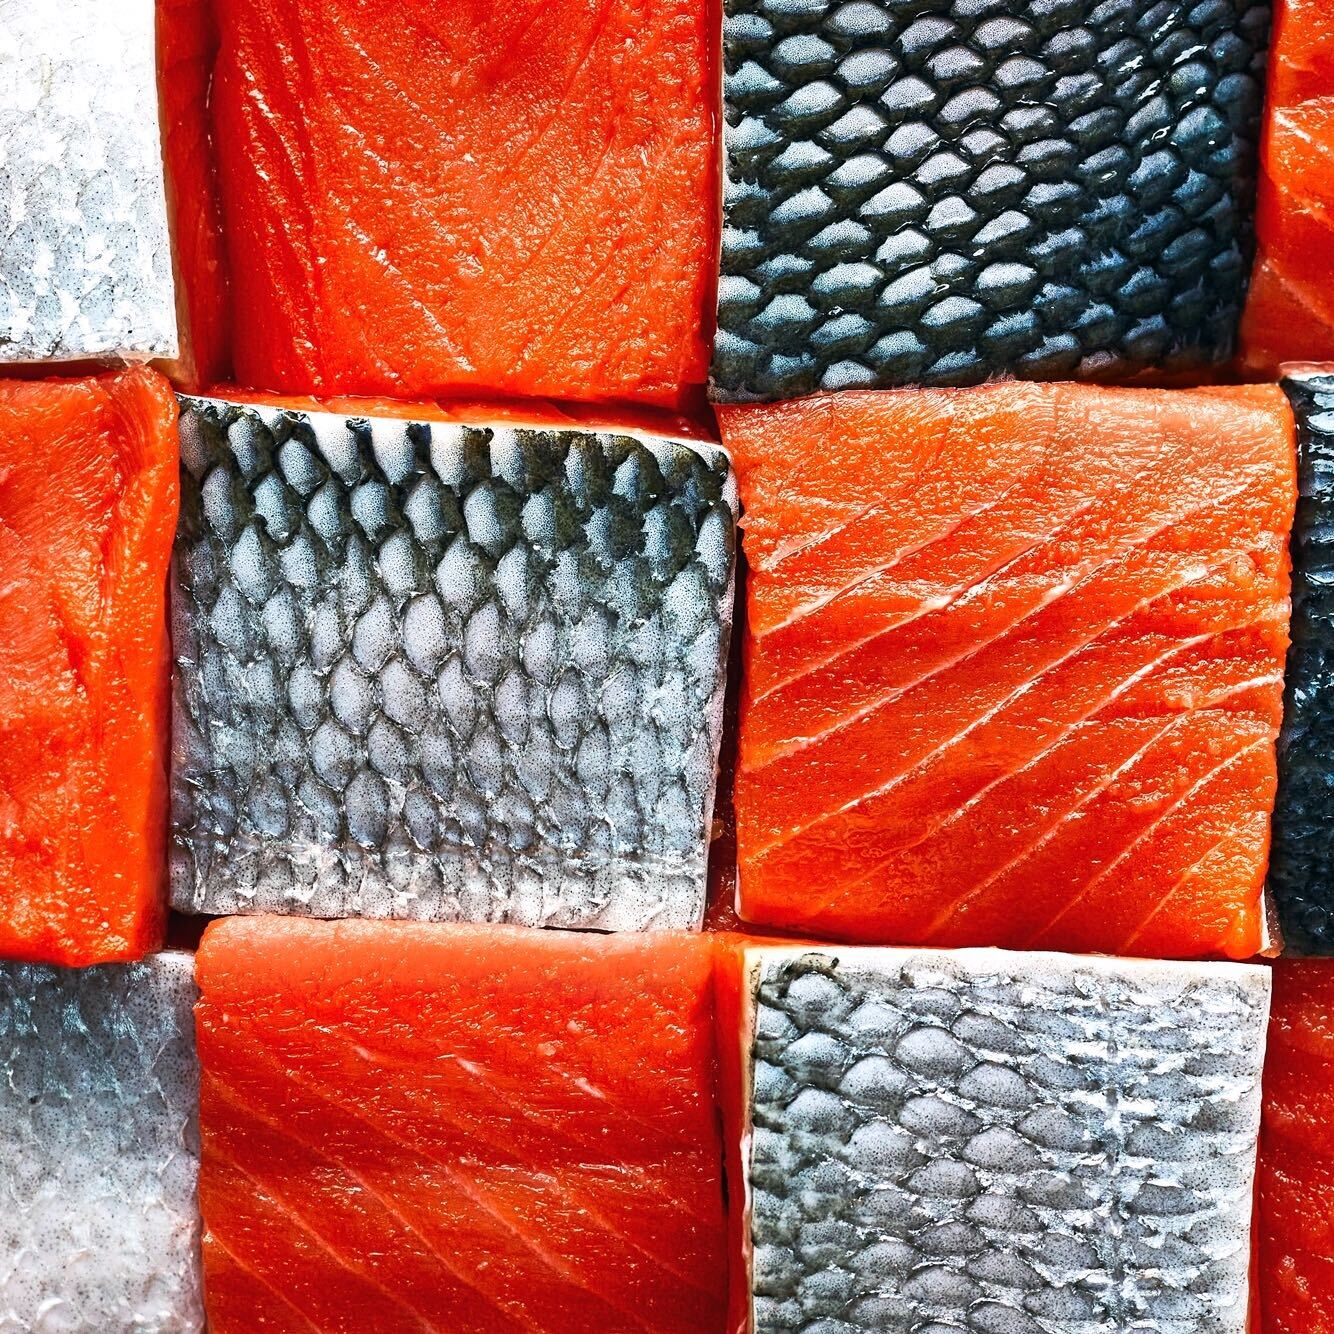 Now's the Time to Order Mass Quantities of Wild Alaskan Salmon Online